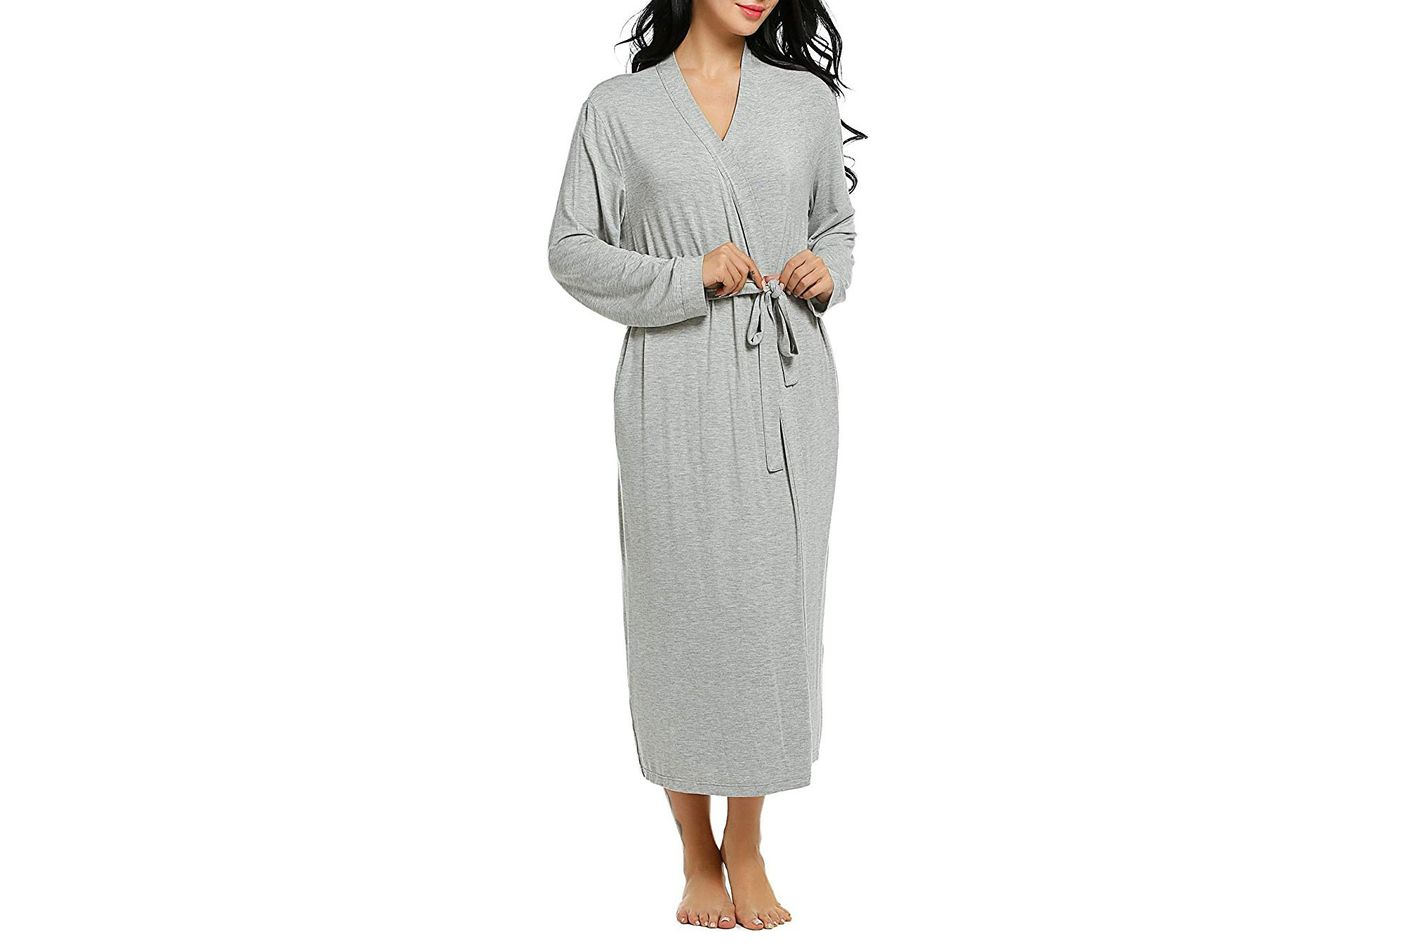 Best Bathrobes for Women - Silk, Terry Cloth, Satin Robes